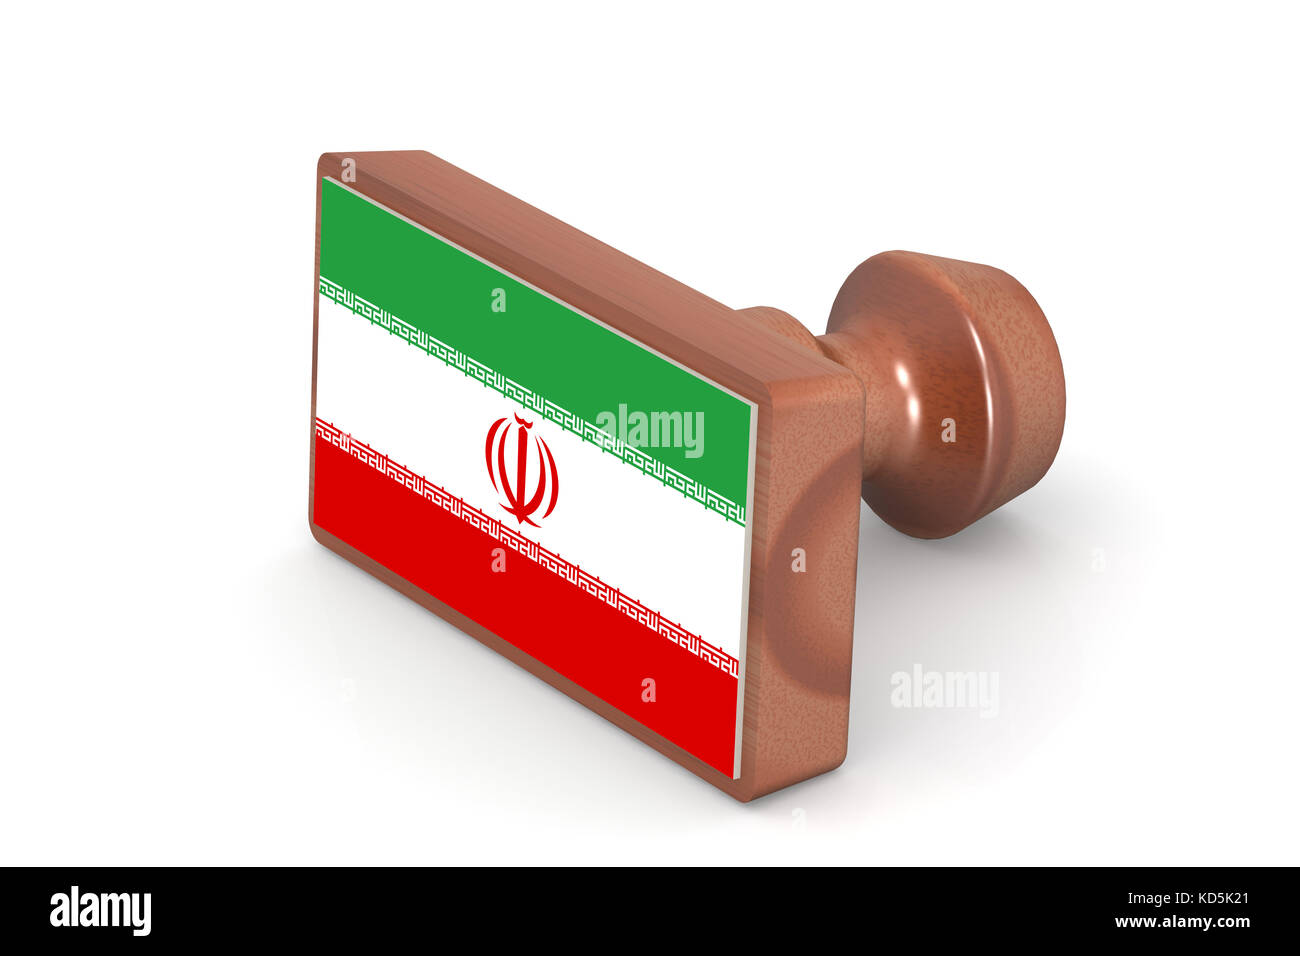 Official flag of iran stock photos official flag of iran stock wooden stamp with iran flag image with hi res rendered artwork that could be used buycottarizona Choice Image